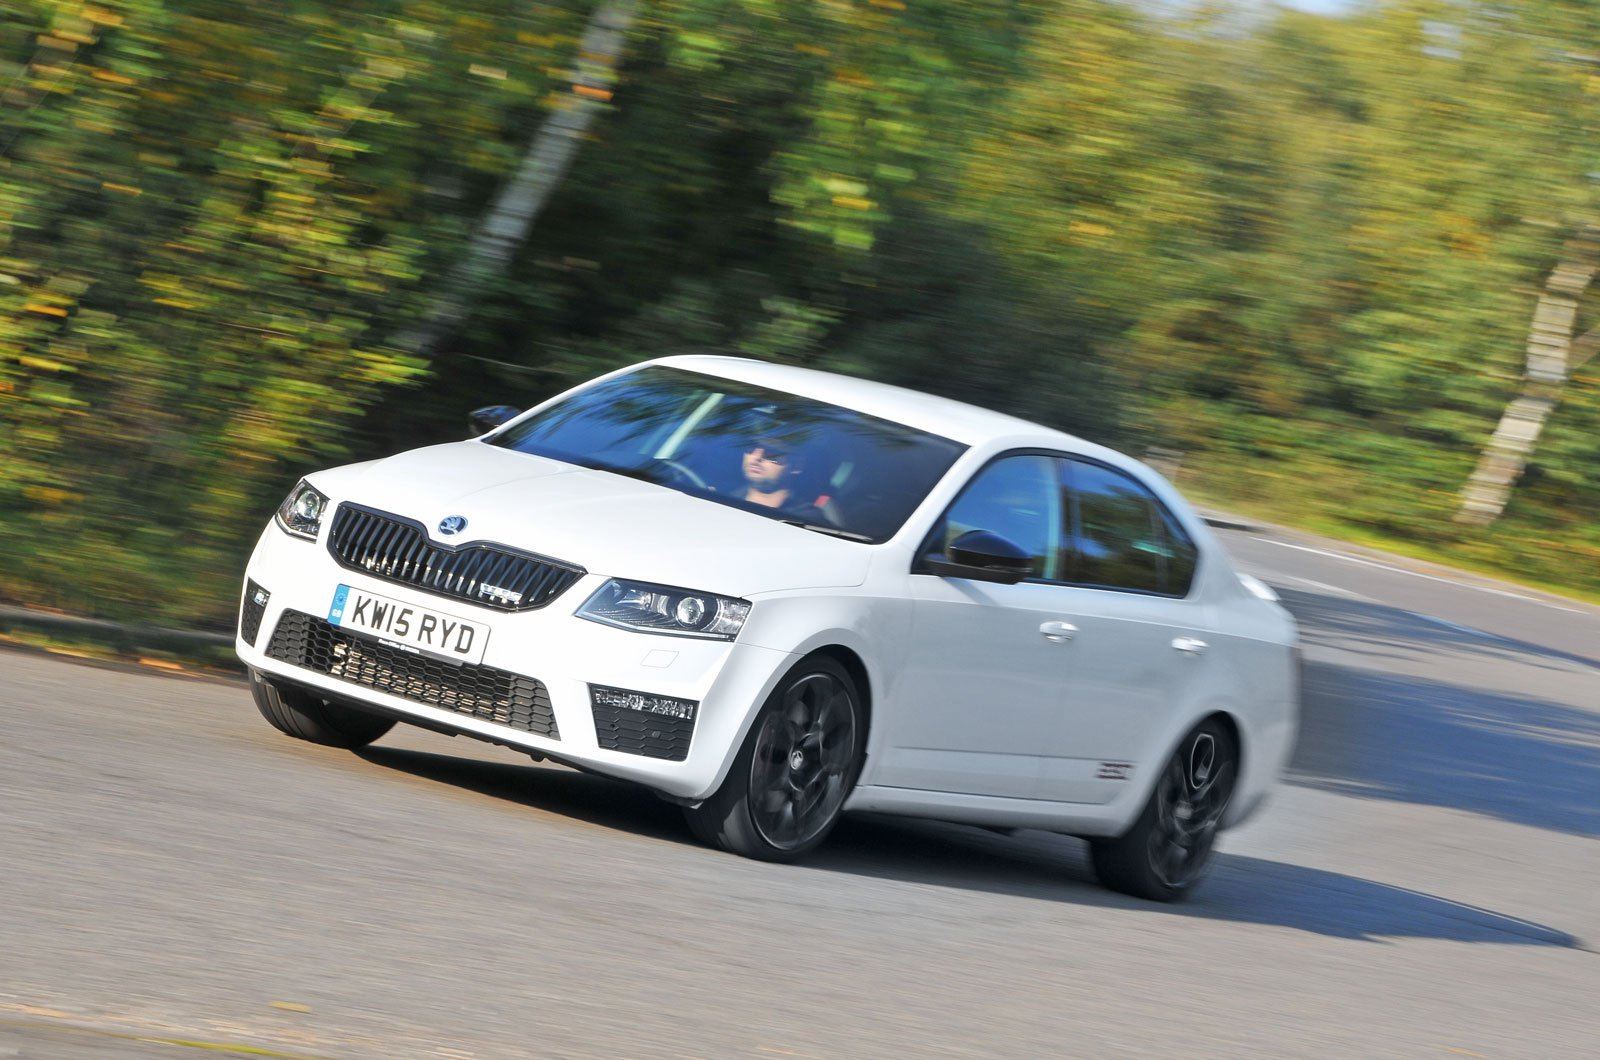 Water Pump Car Cost >> Should Skoda Pay For An Octavia Water Pump That Failed Just